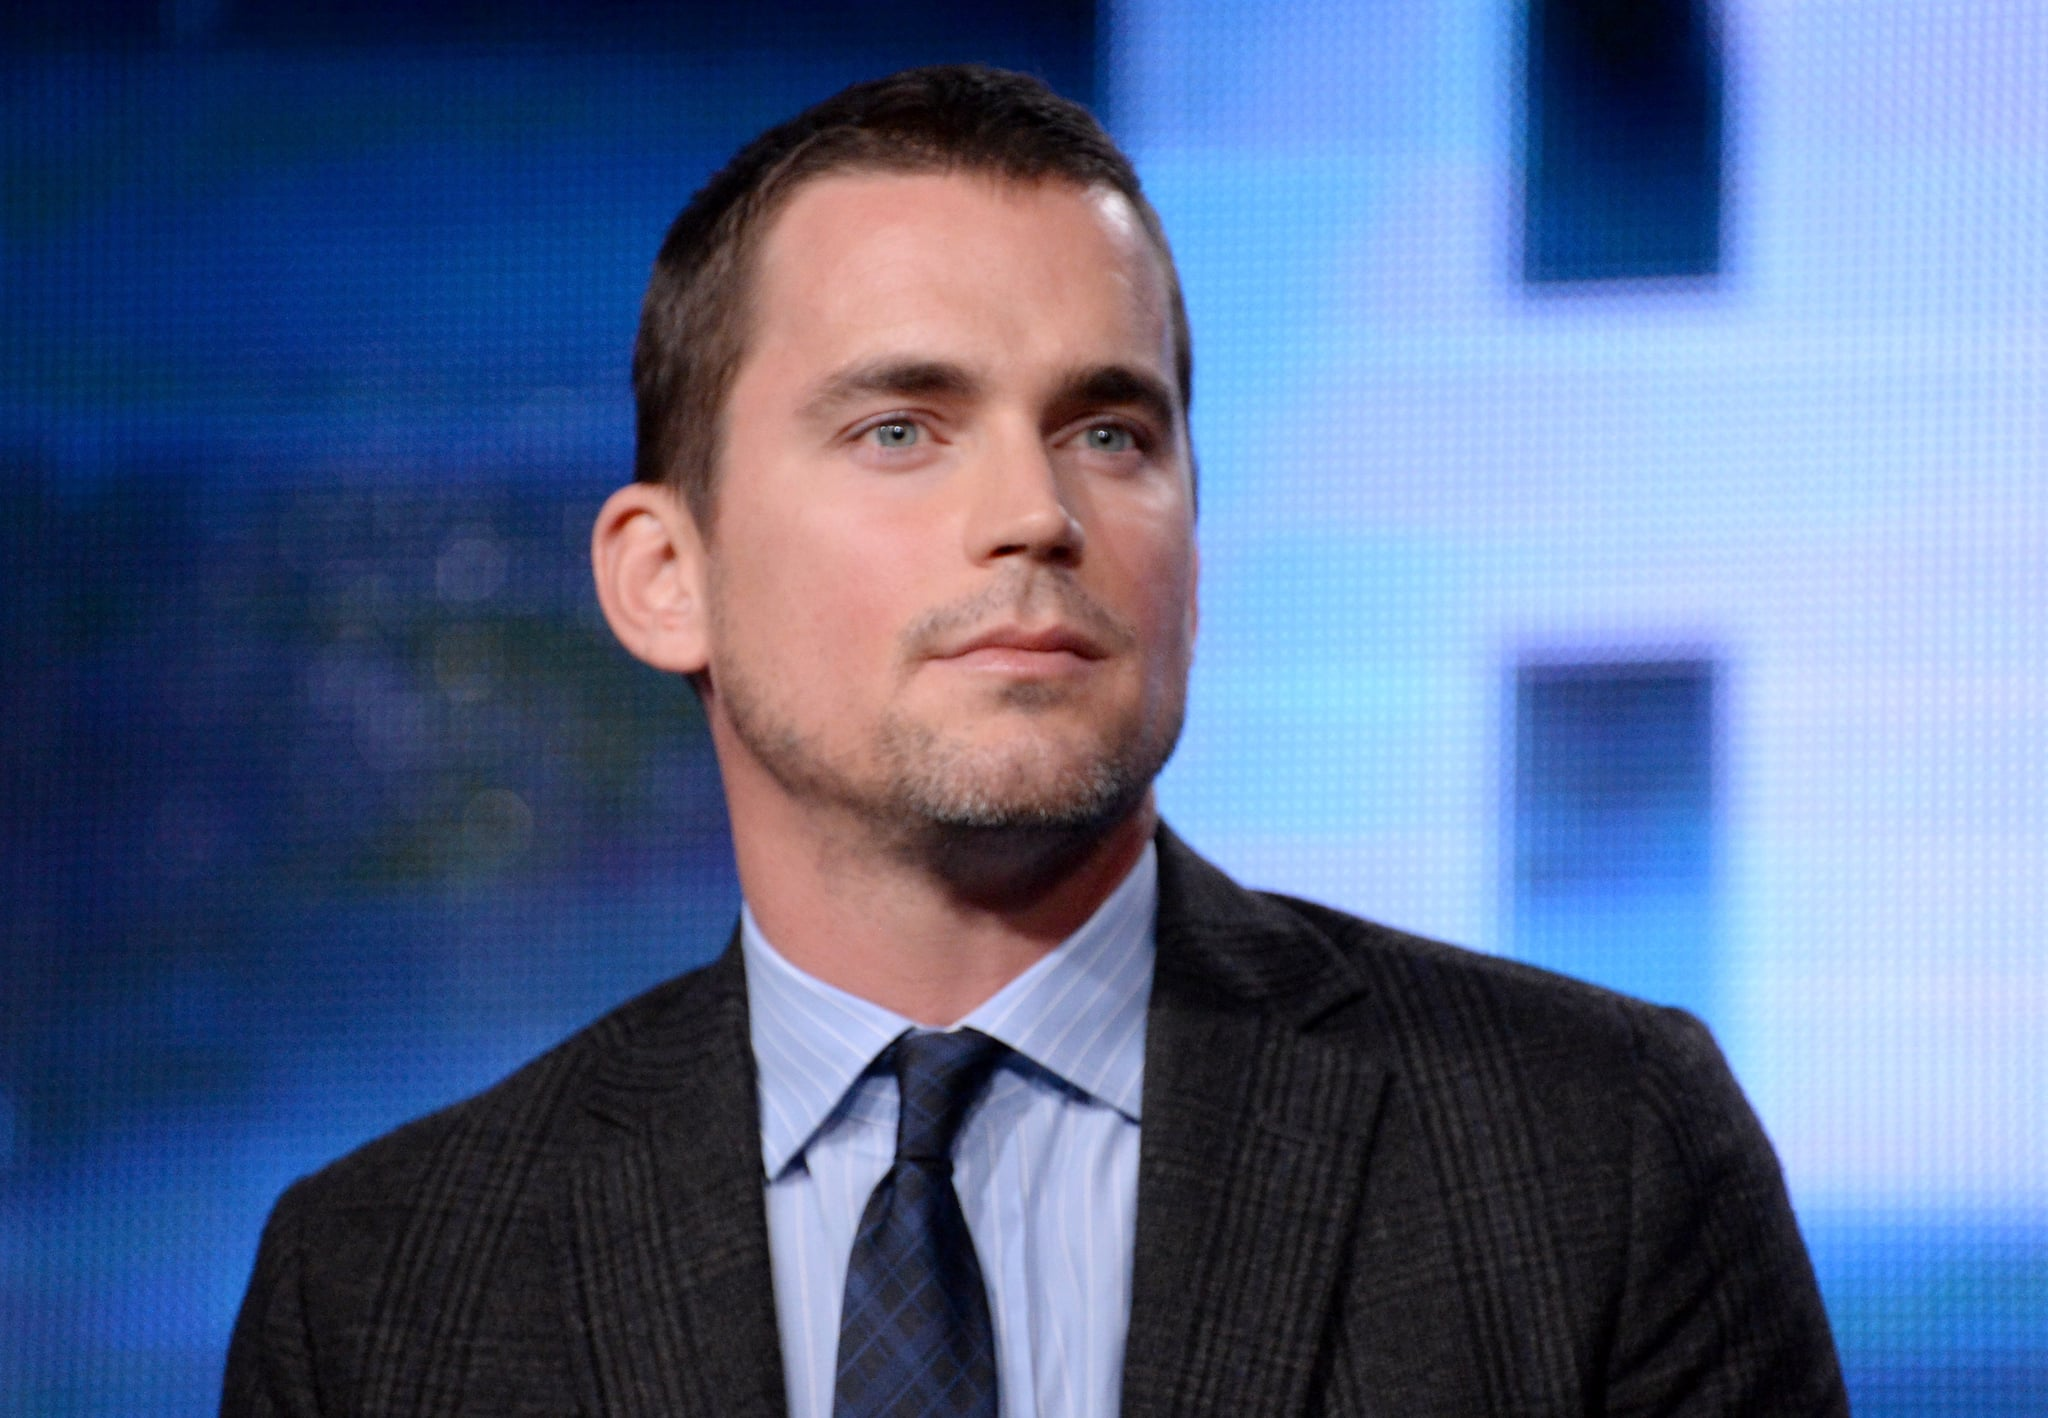 Matt Bomer S New Buzz Cut Hairstyle 2014 Popsugar Beauty